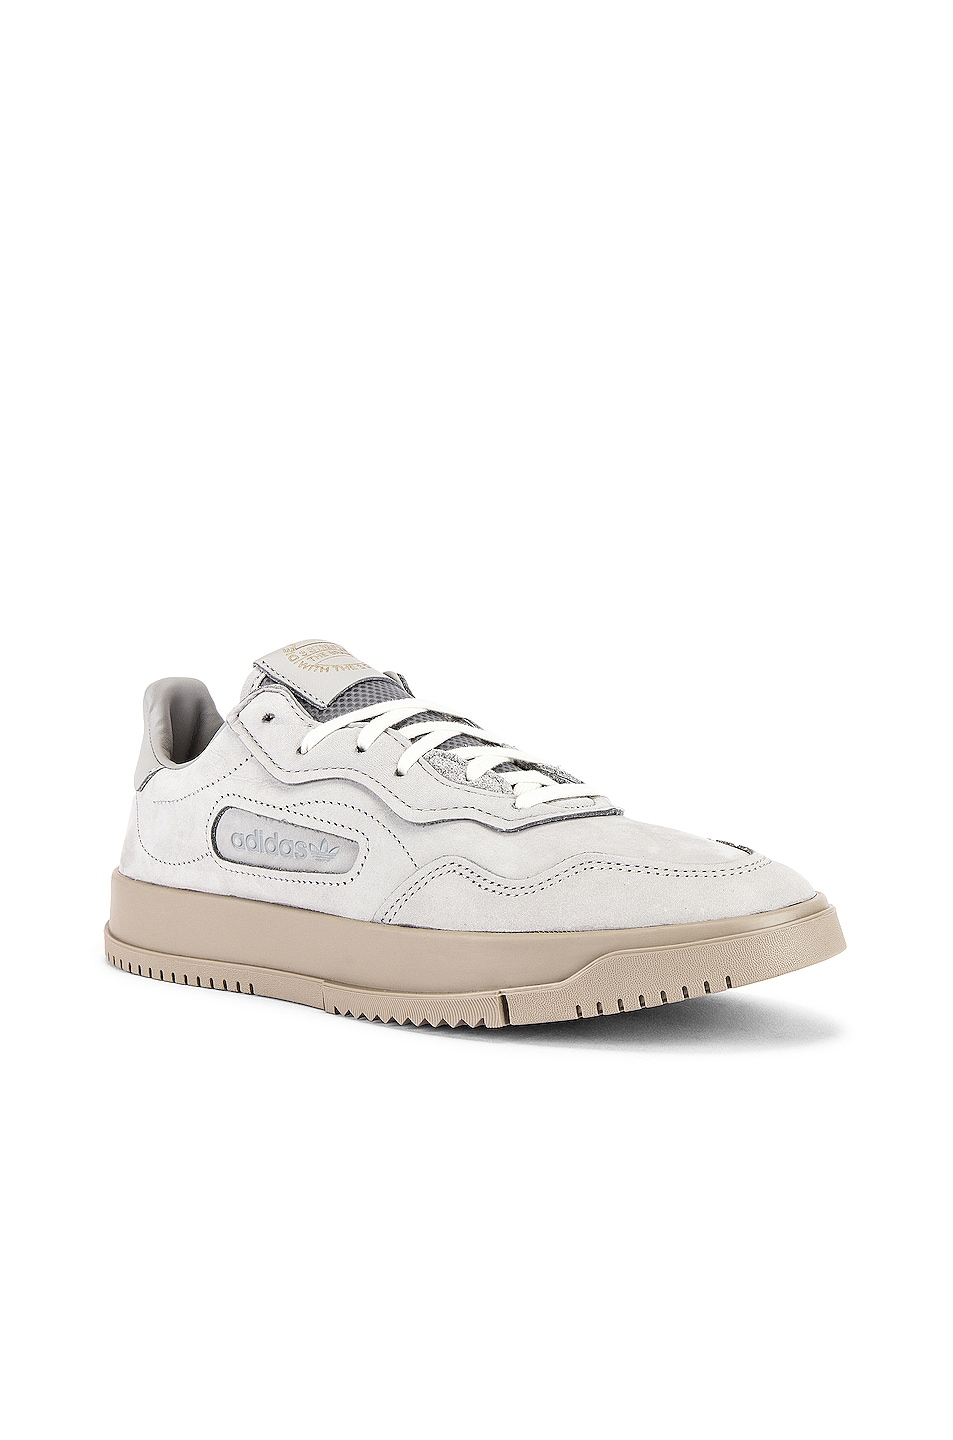 Image 1 of adidas Originals SC Premiere in Grey Two F17 & Grey Two F17 & Light Brown